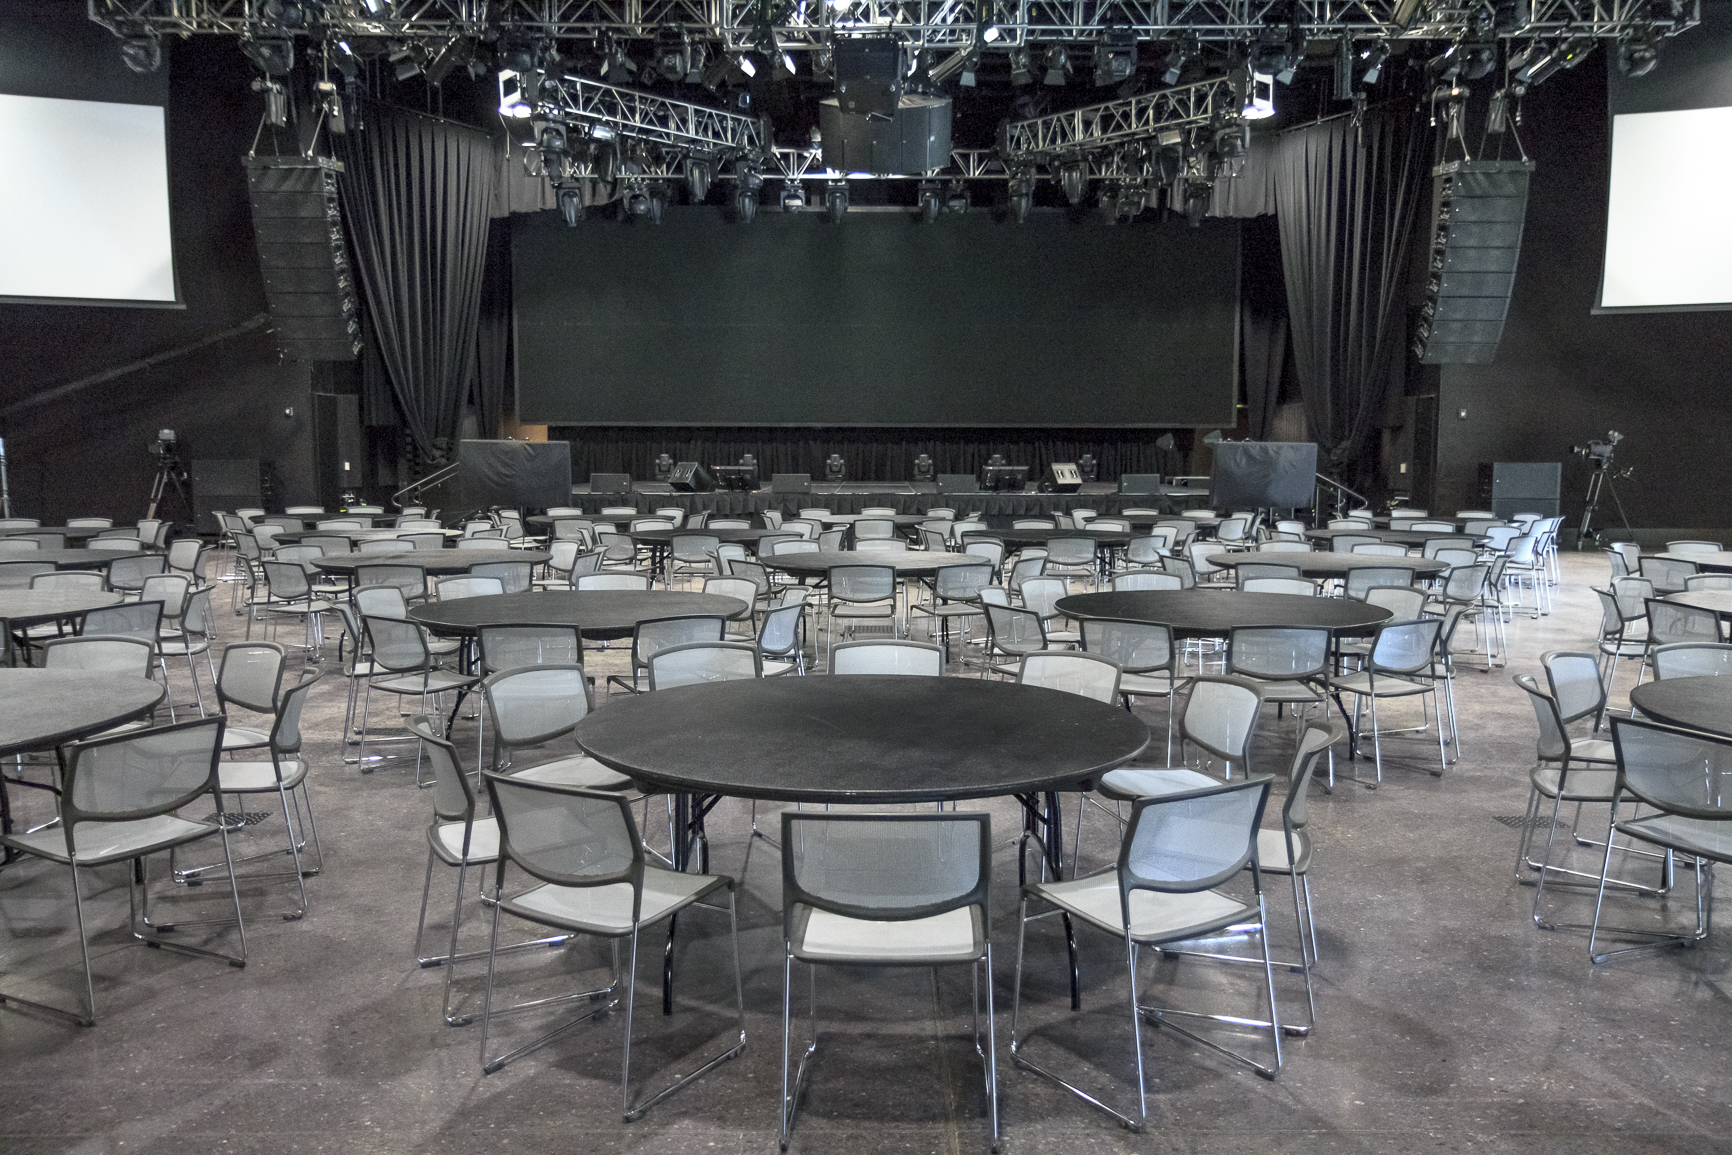 One of the spaces used for WWE and Music